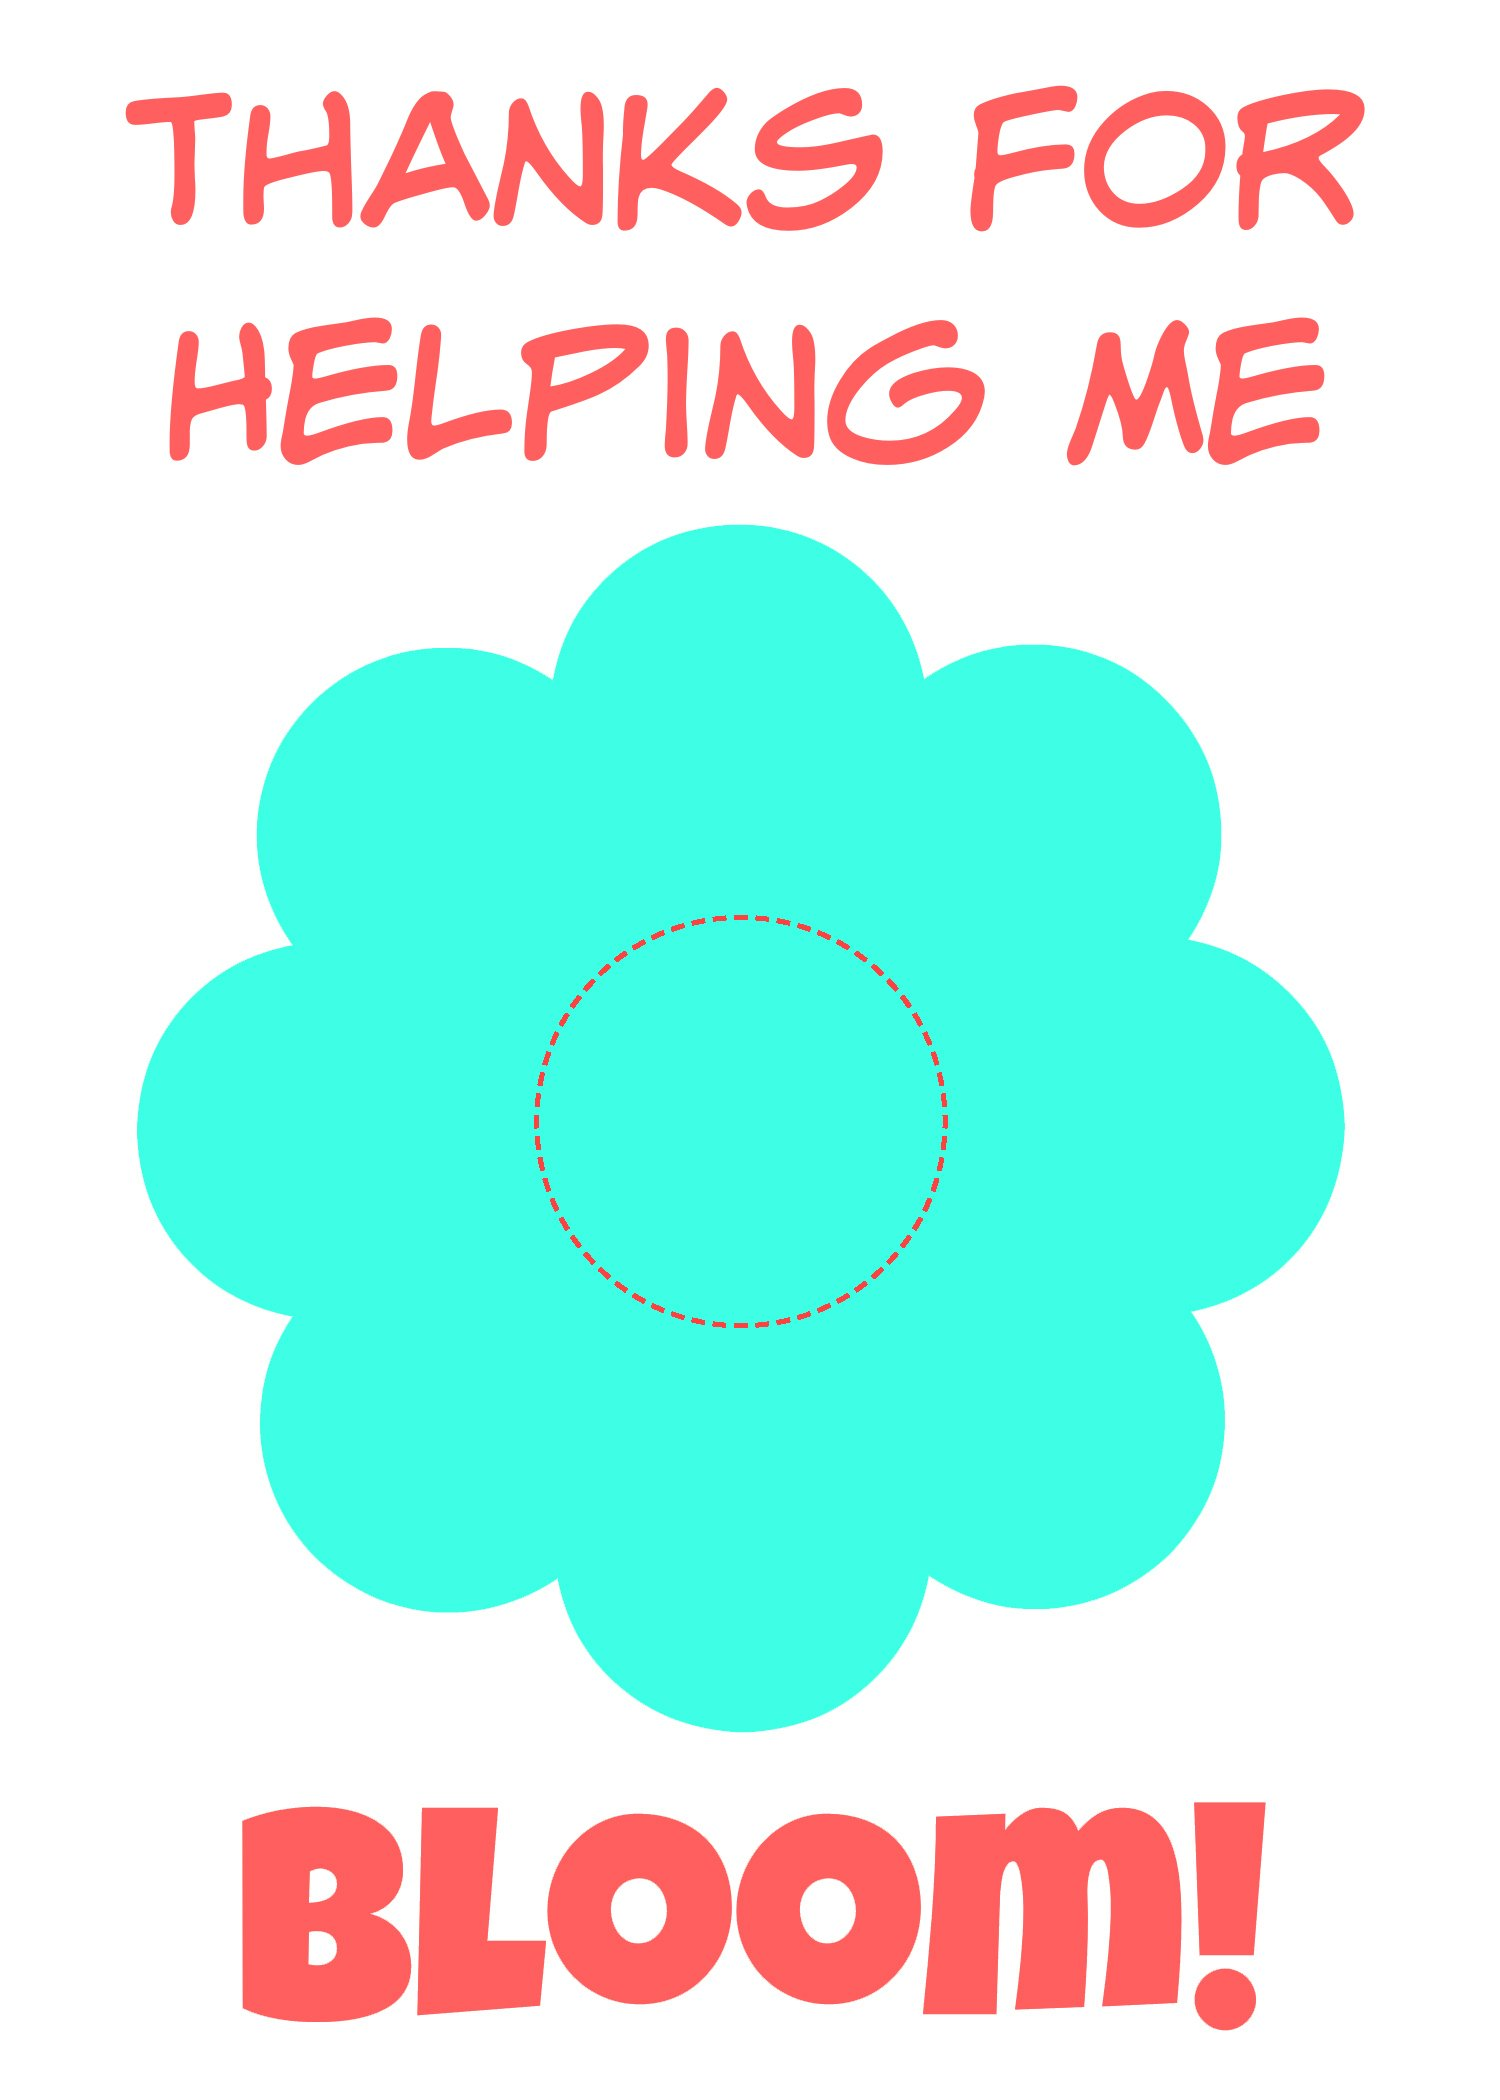 It is an image of Astounding Thanks for Helping Me Bloom Printable